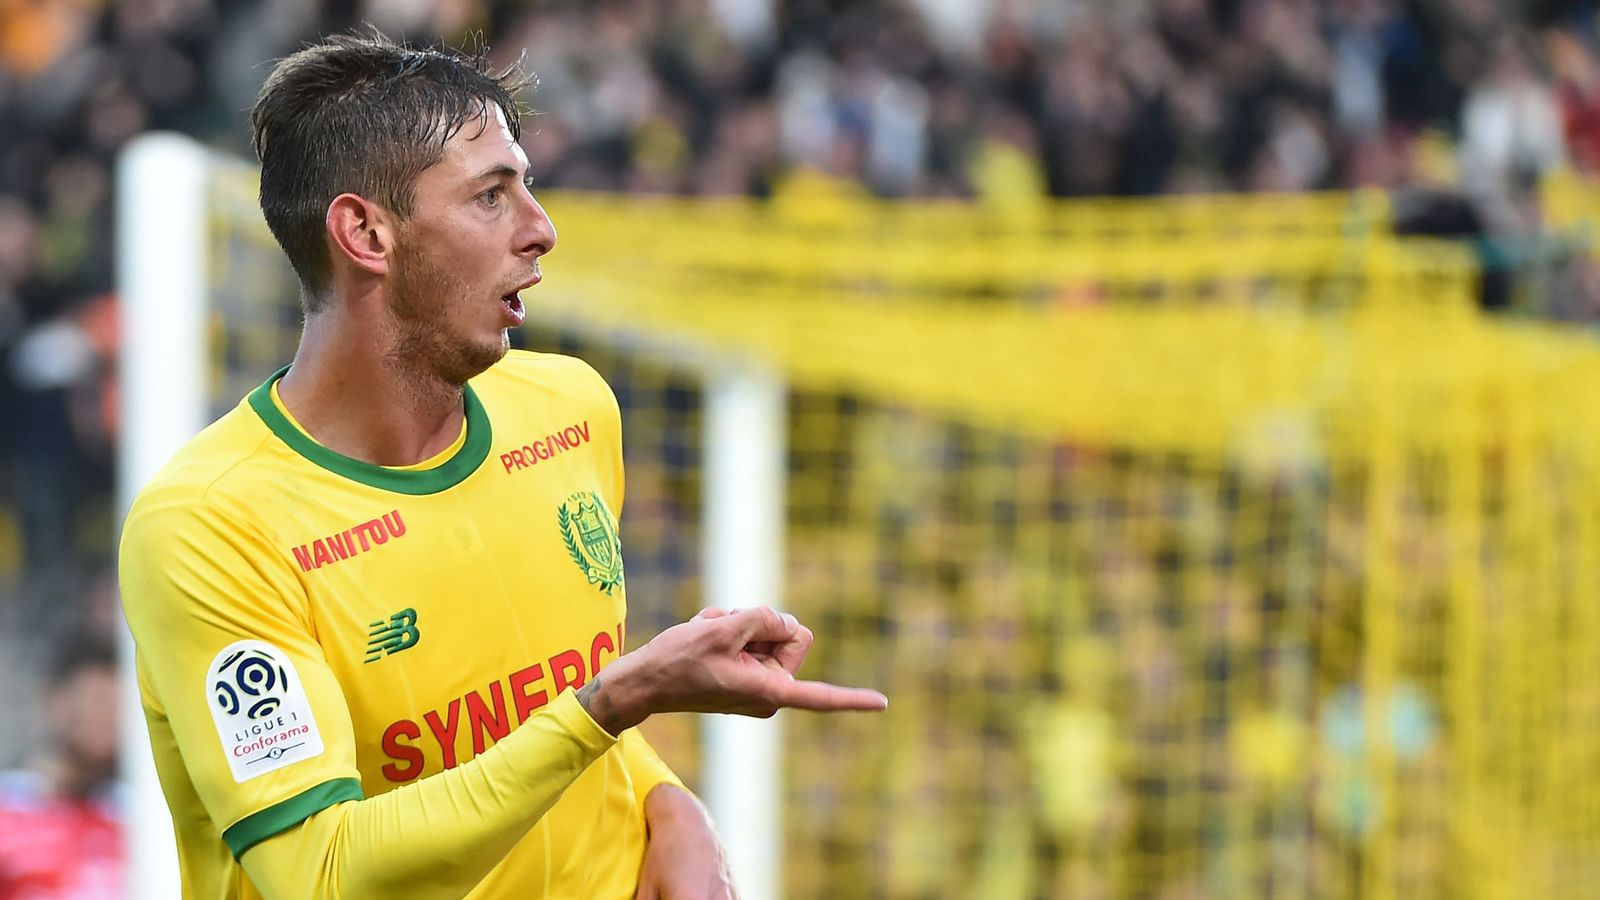 Emiliano Sala exposed to harmful levels of carbon monoxide on board plane